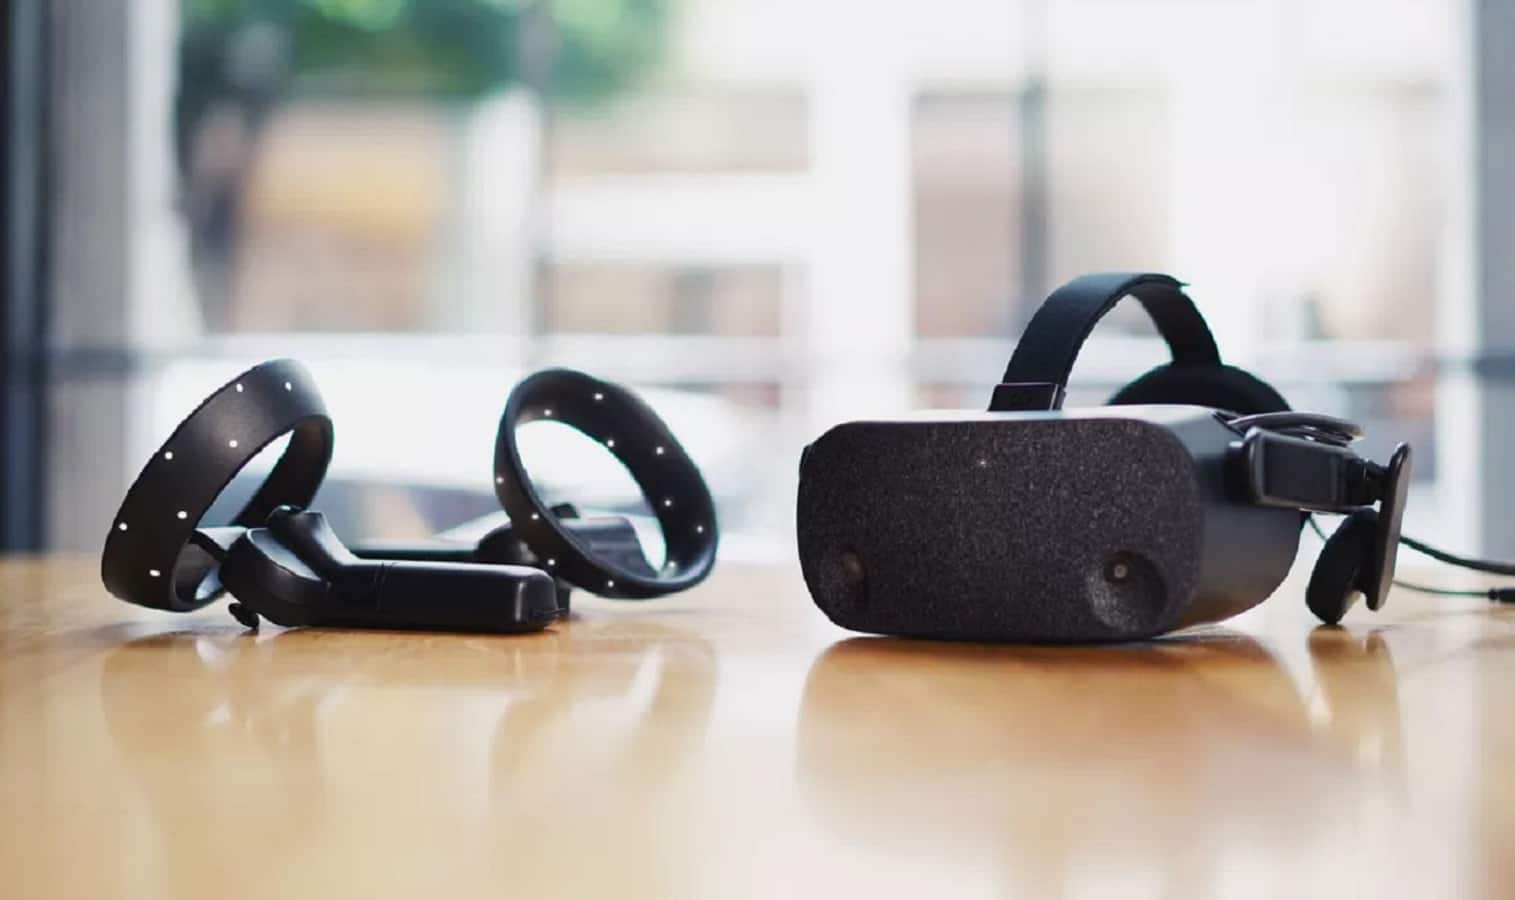 hp reverb vr headset on table